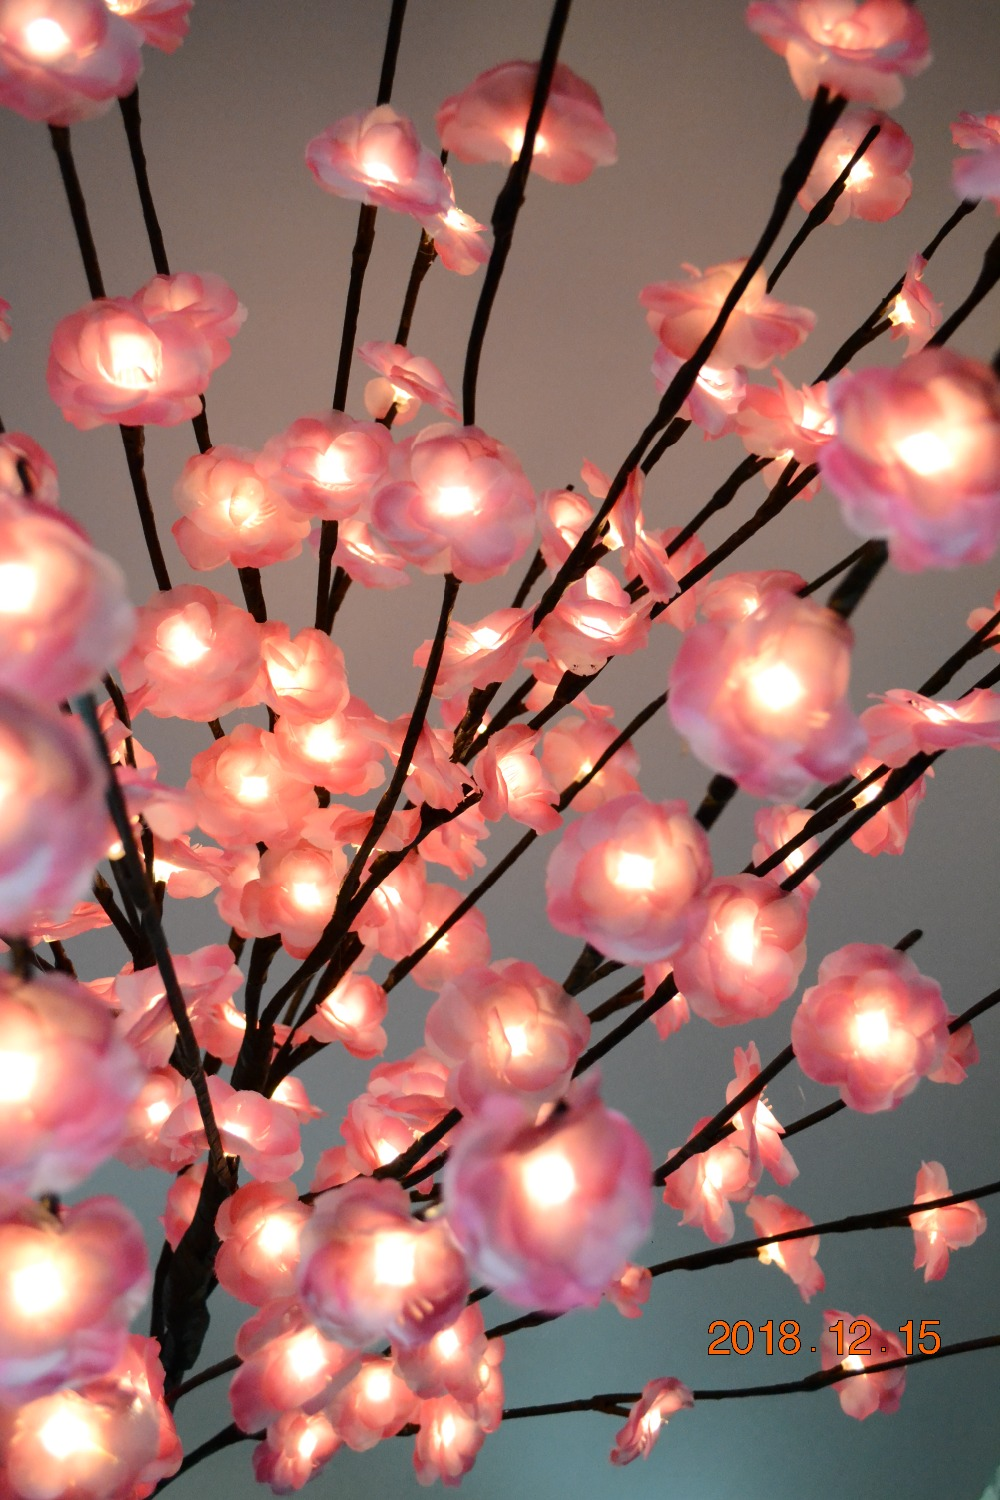 52 160 LED Blossom Mini Rose Flower Tree Light With Base Nature Trunk Holiday New Year Wedding Luminaria Decorative Tree Ligh - 4